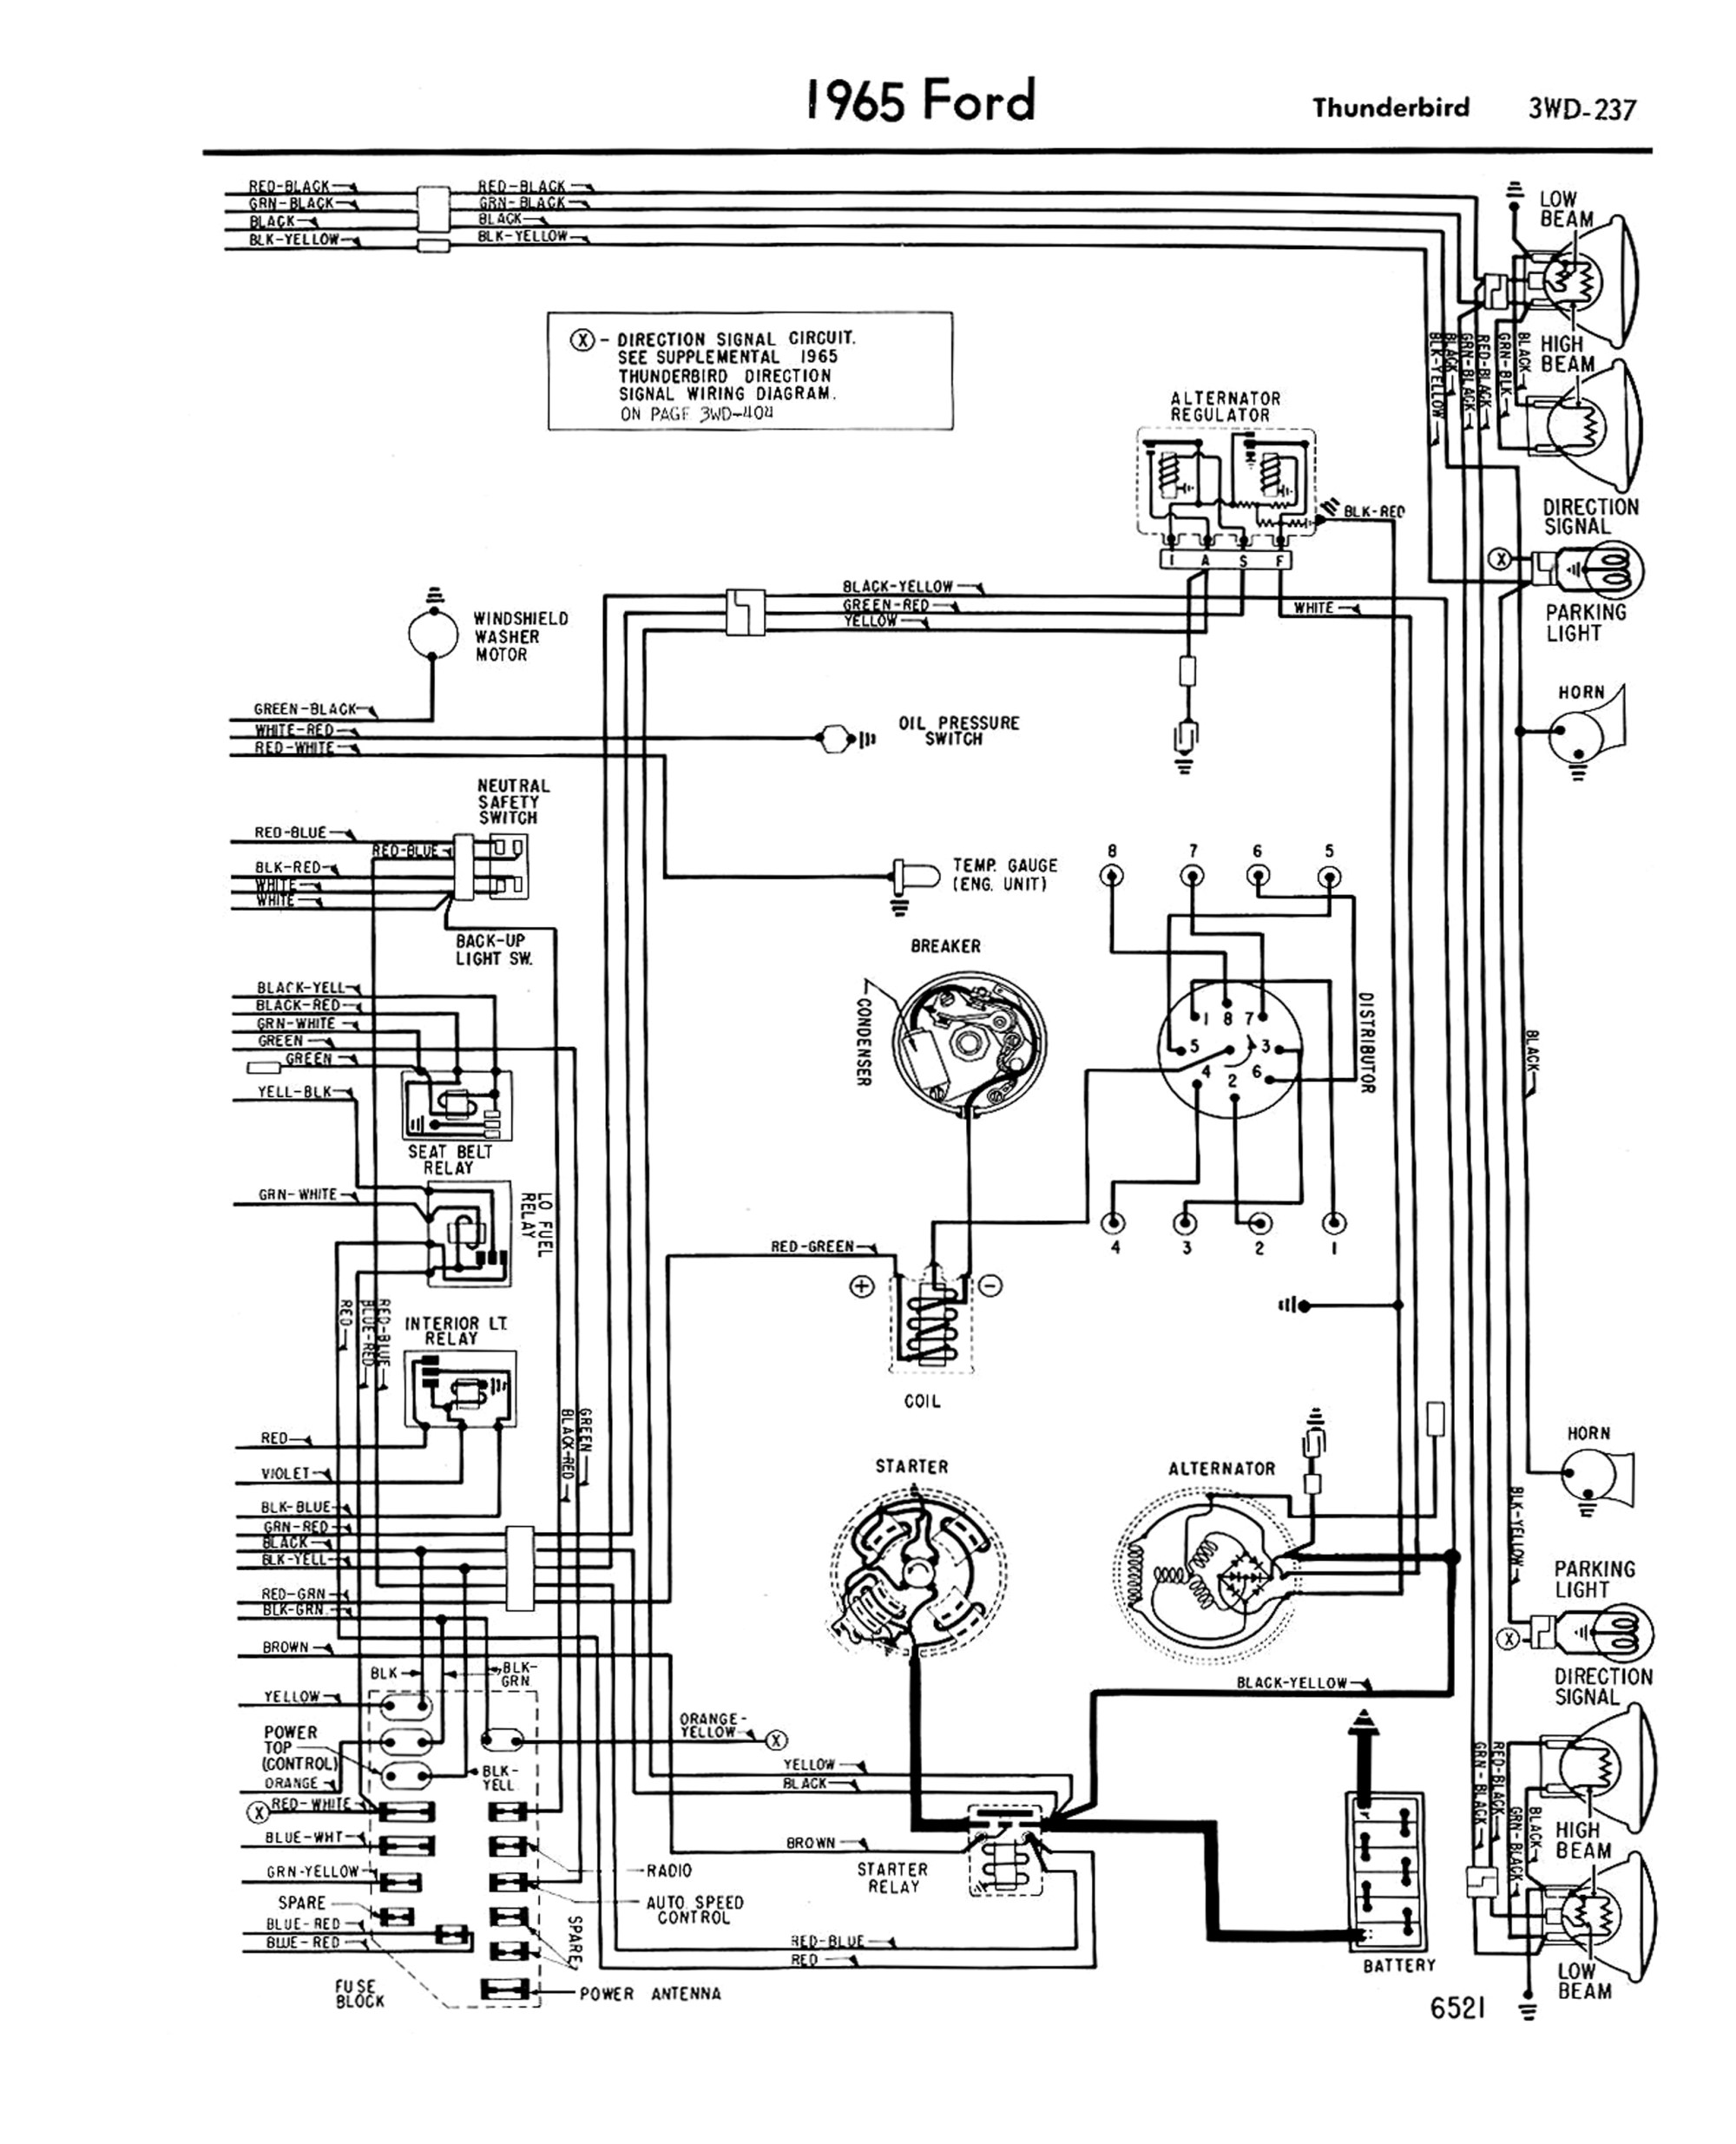 hight resolution of 68 thunderbird wiring diagram wiring diagram log 68 thunderbird ford vacuum routing diagrams free download wiring